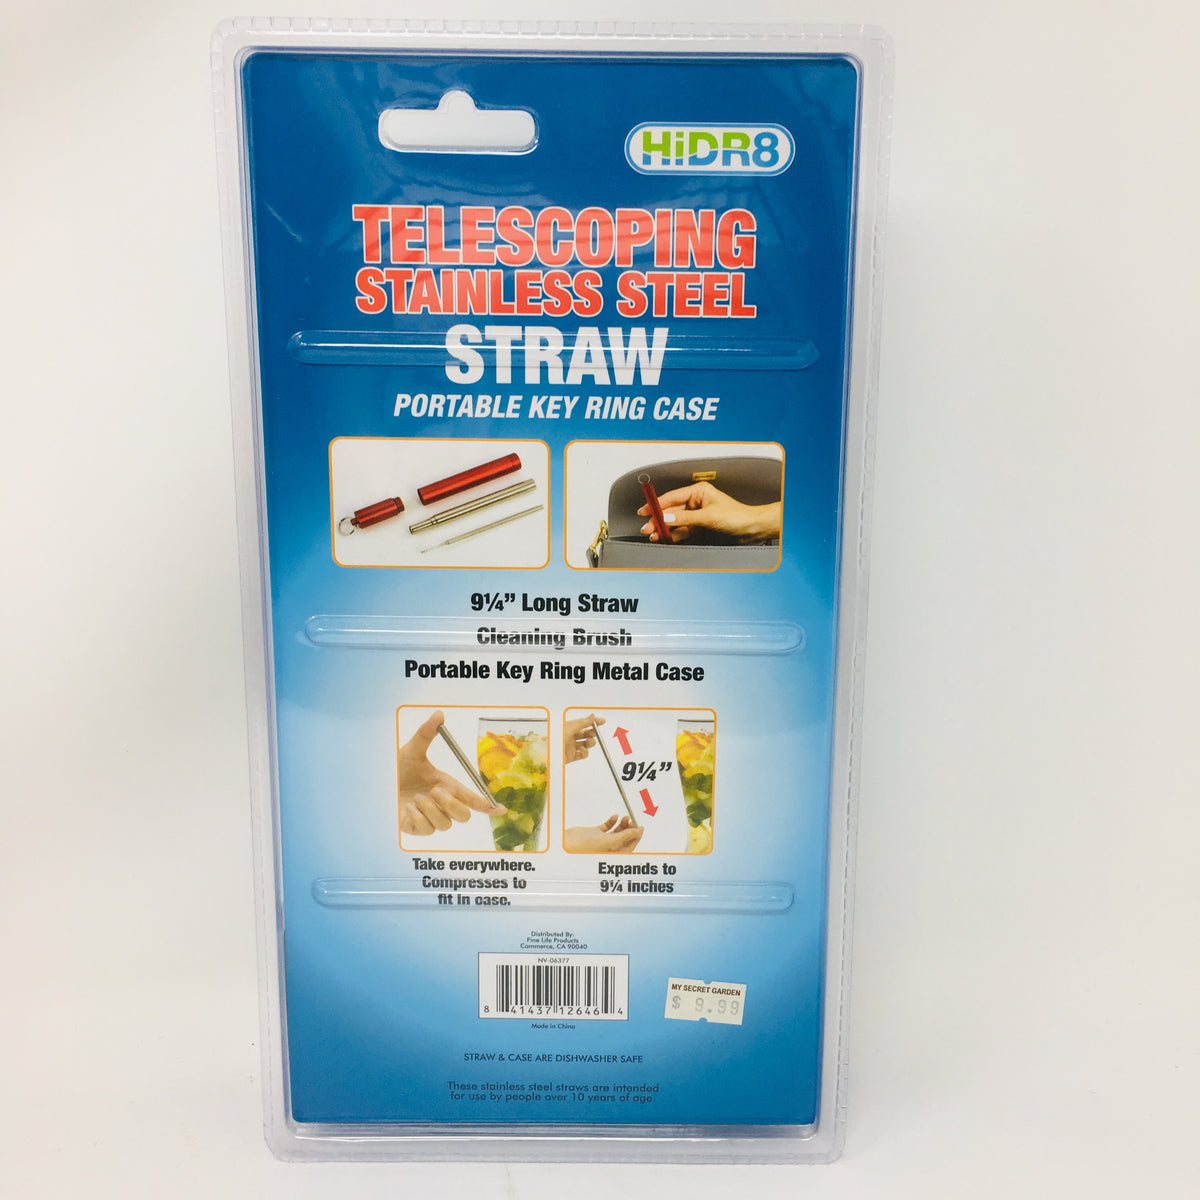 Telescoping Stainless Steel Straw